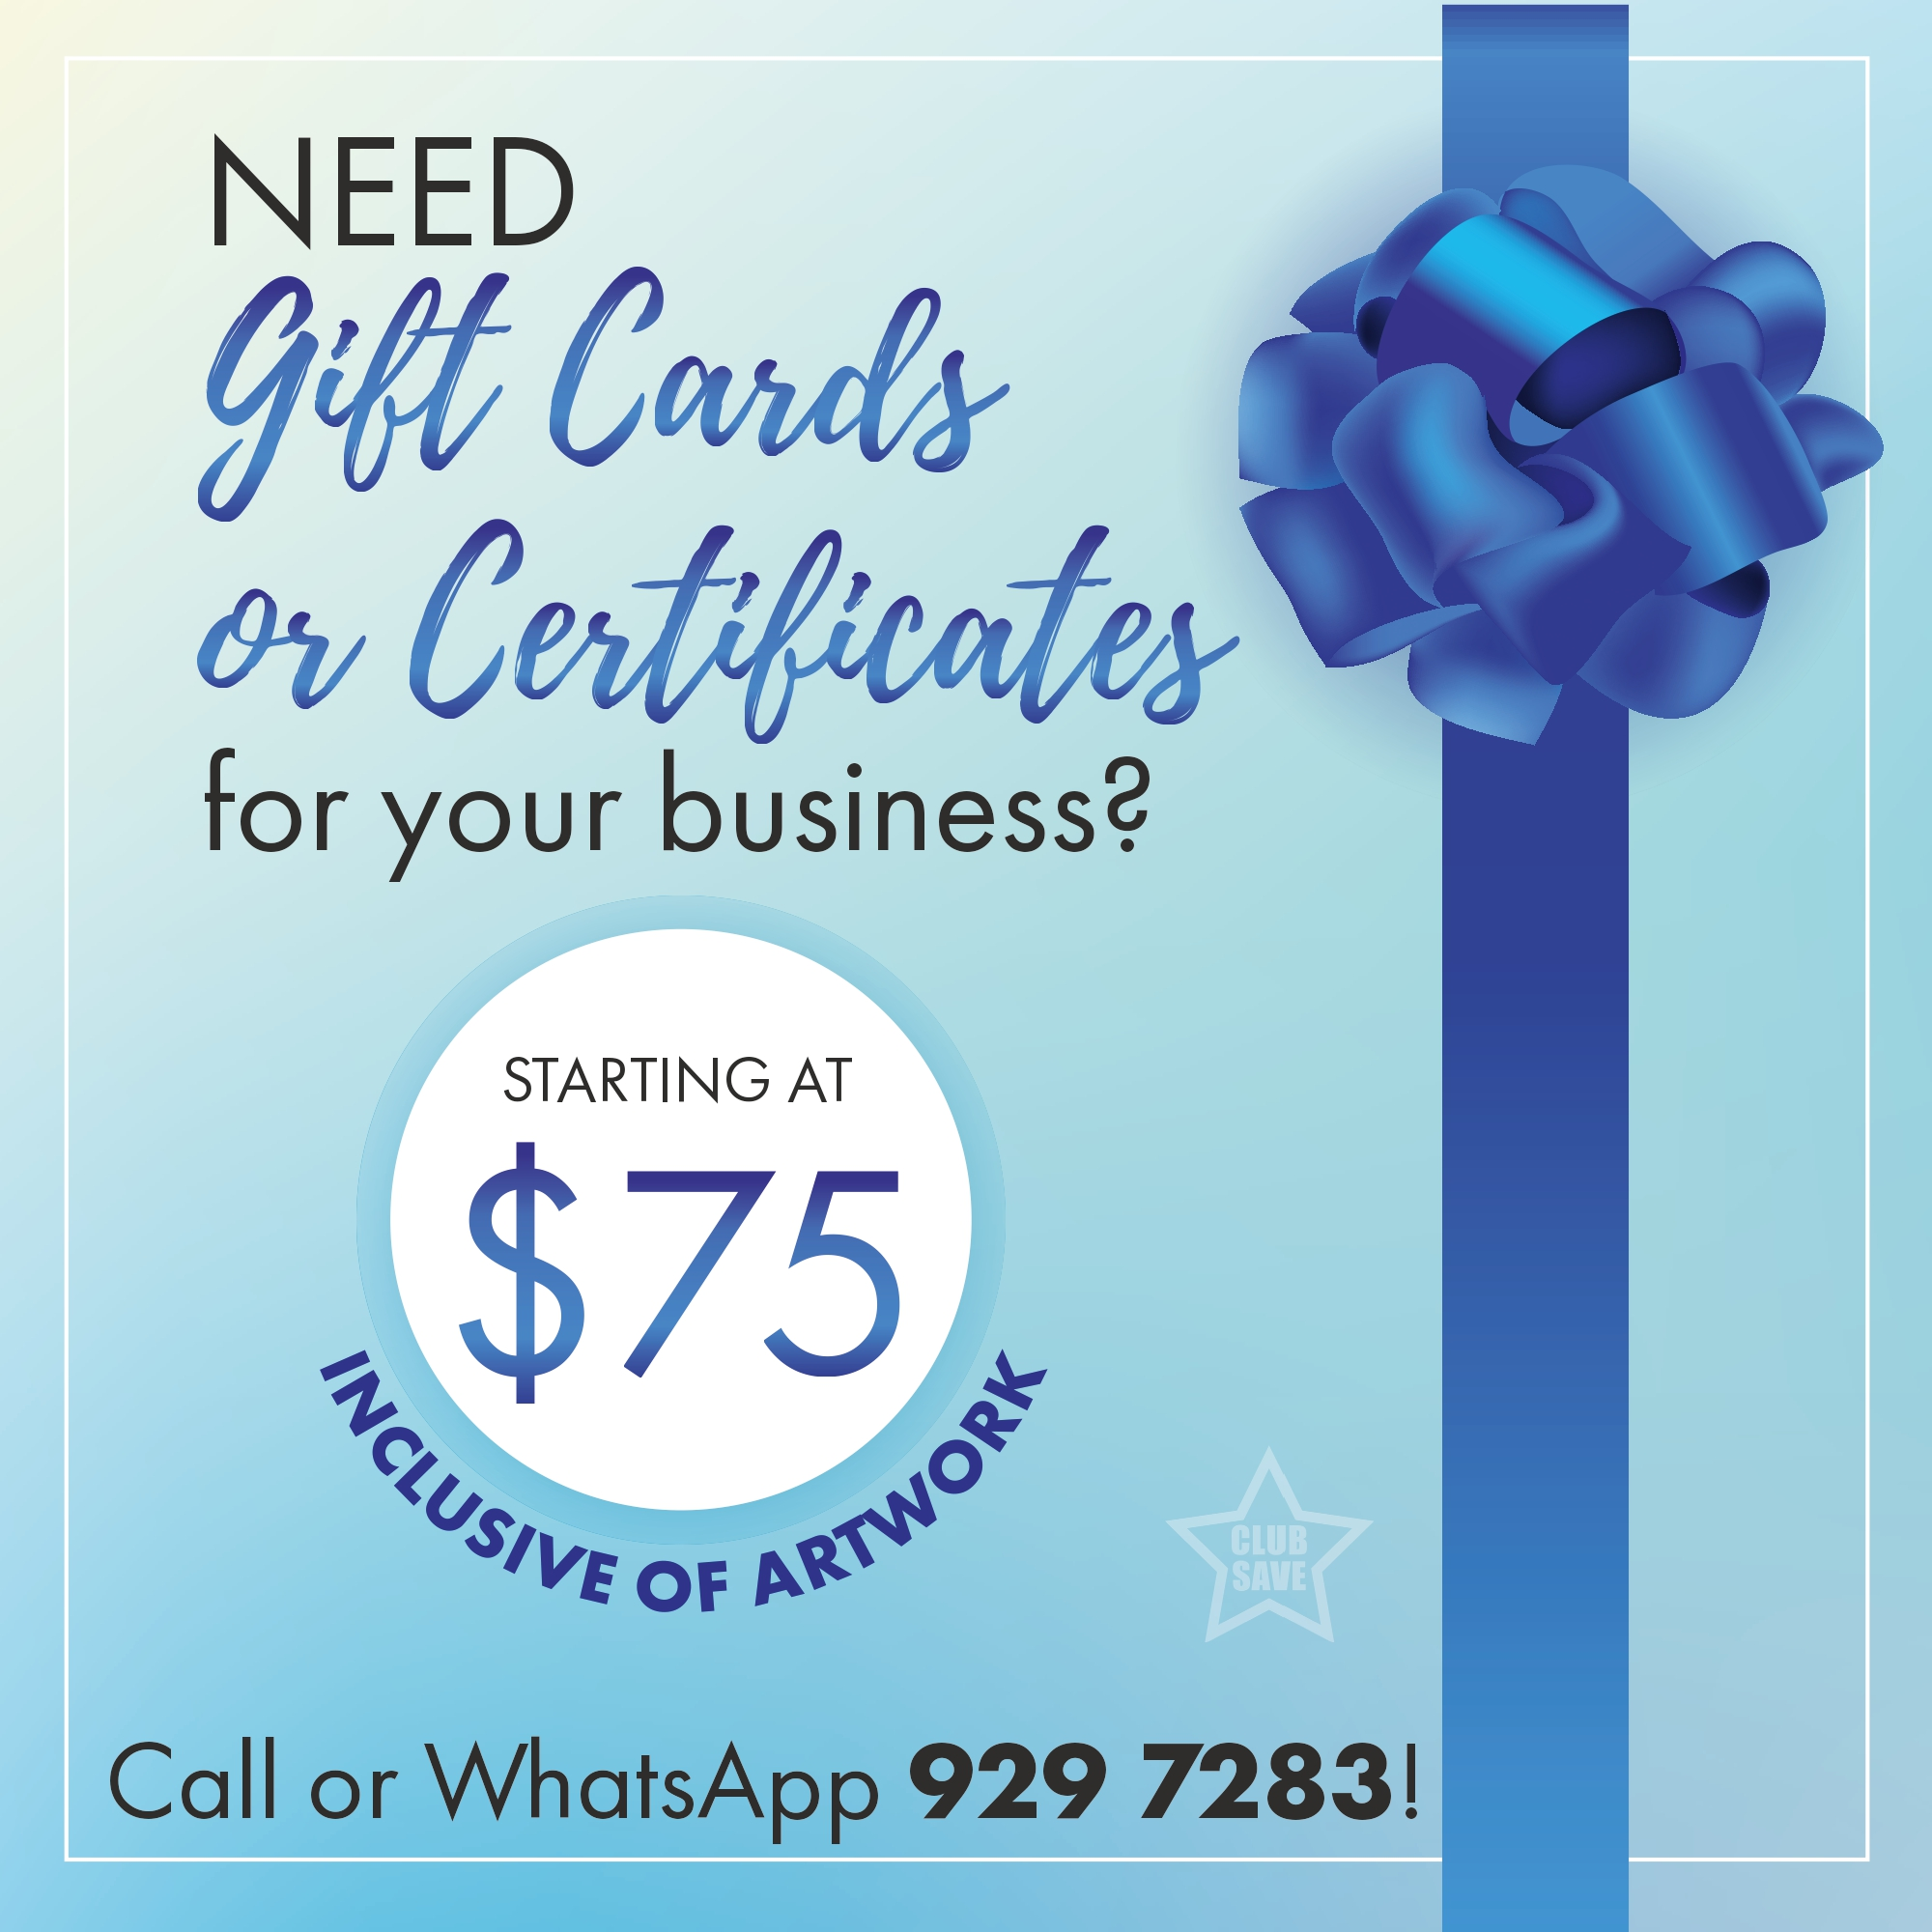 Gift cards and cert